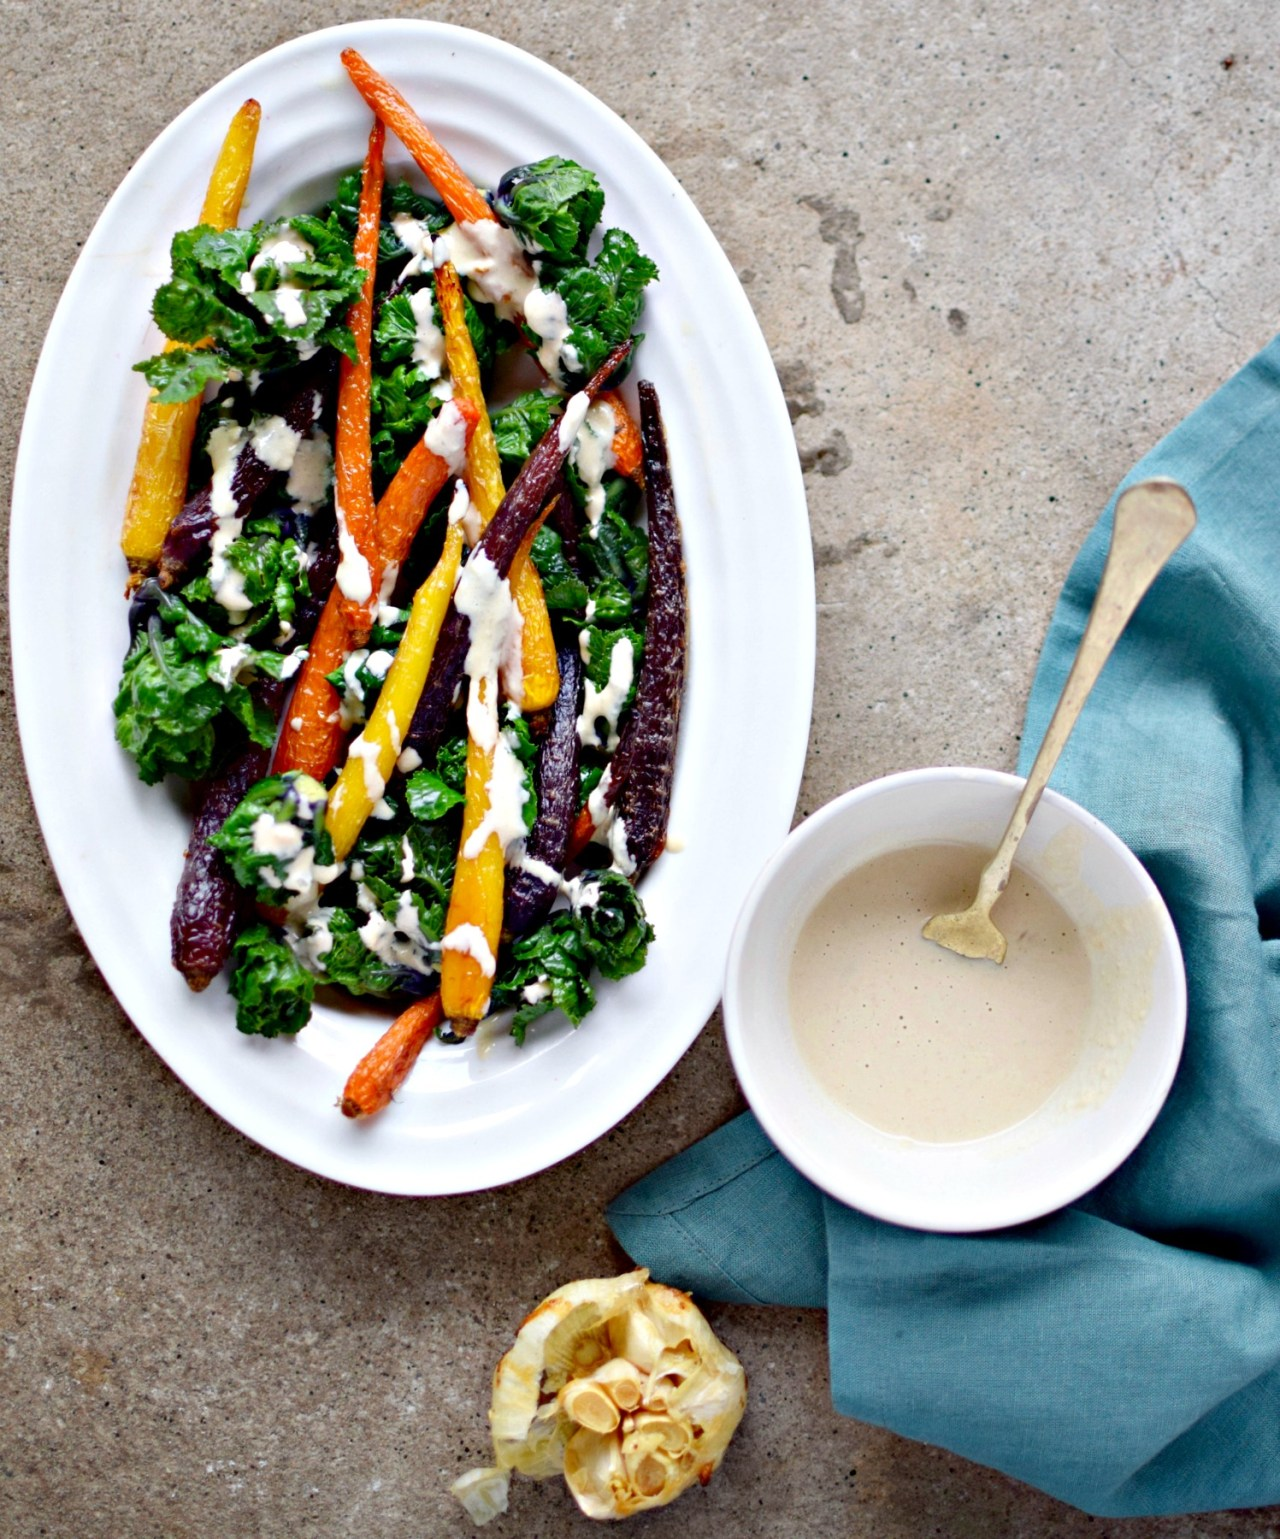 Whether you opt for fancy rainbow carrots or plump for everyday orange ones, painted in roasted garlic-tahini drizzle this dish is holiday-table ready.